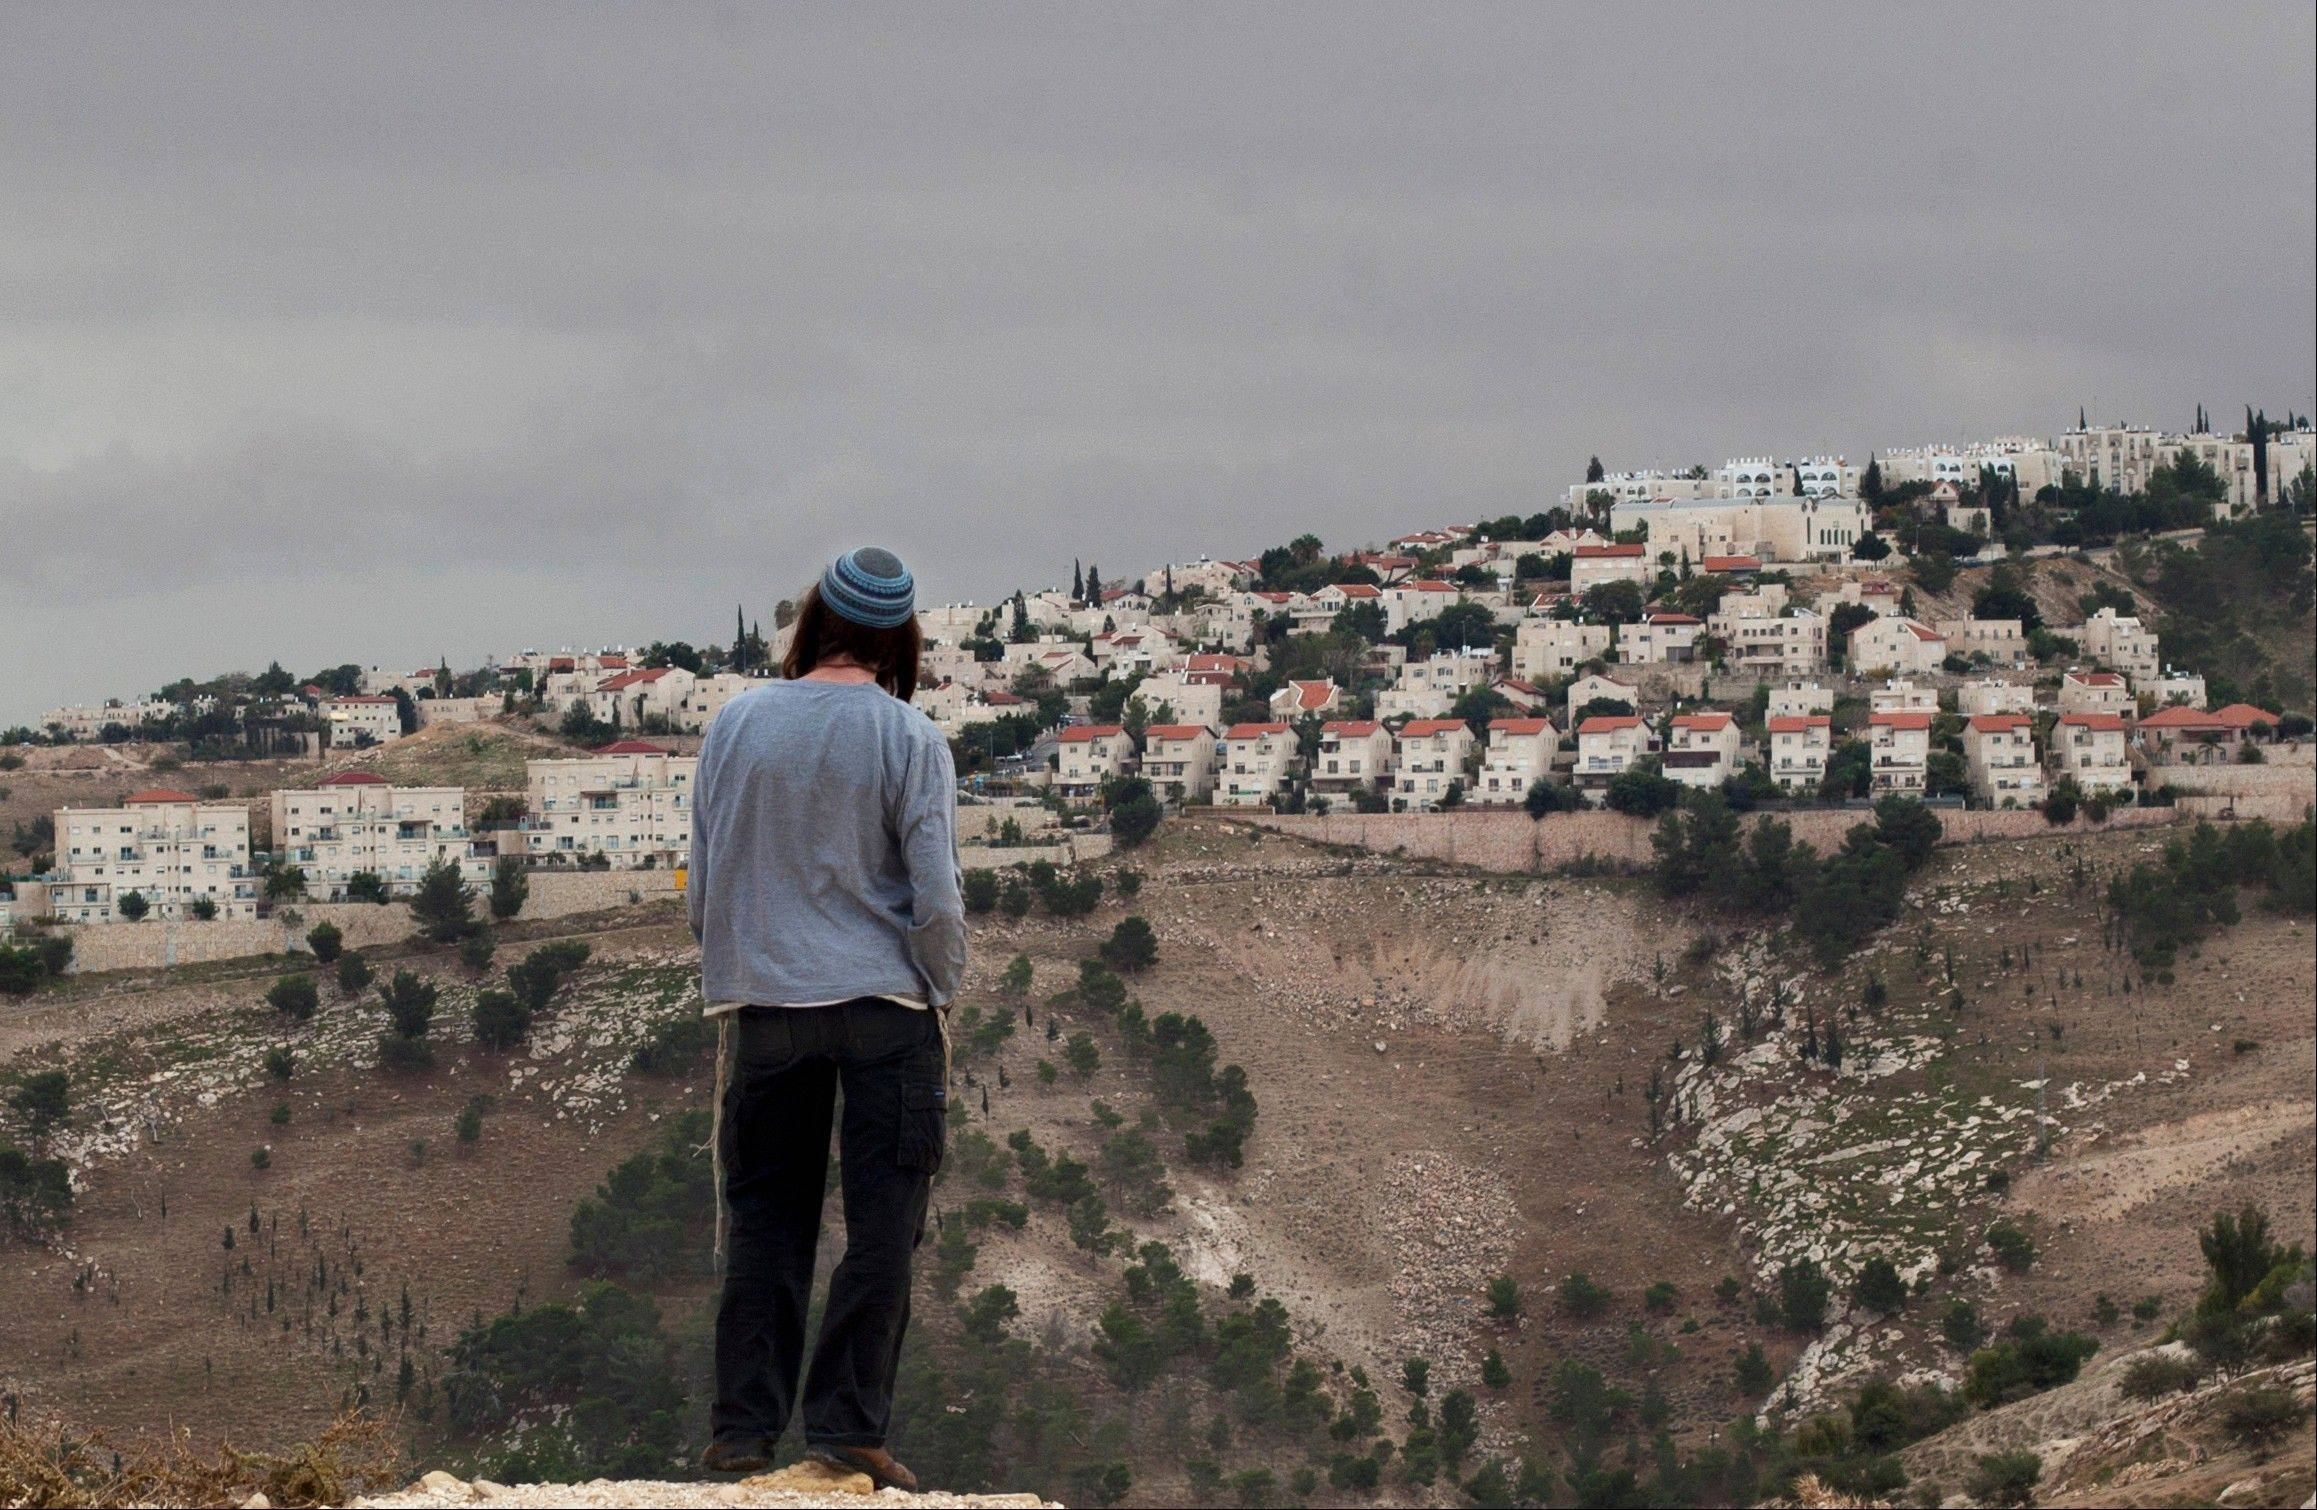 A Jewish settler looks at the West bank settlement of Maaleh Adumim, from the E-1 area on the eastern outskirts of Jerusalem, Wednesday, Dec. 5, 2012. An Israeli-Palestinian showdown over plans for new Jewish settlements around Jerusalem escalated on Wednesday: Israel pushed the most contentious of the projects further along in the planning pipeline, while the Palestinian president said he would seek U.N. Security Council help to block the construction.